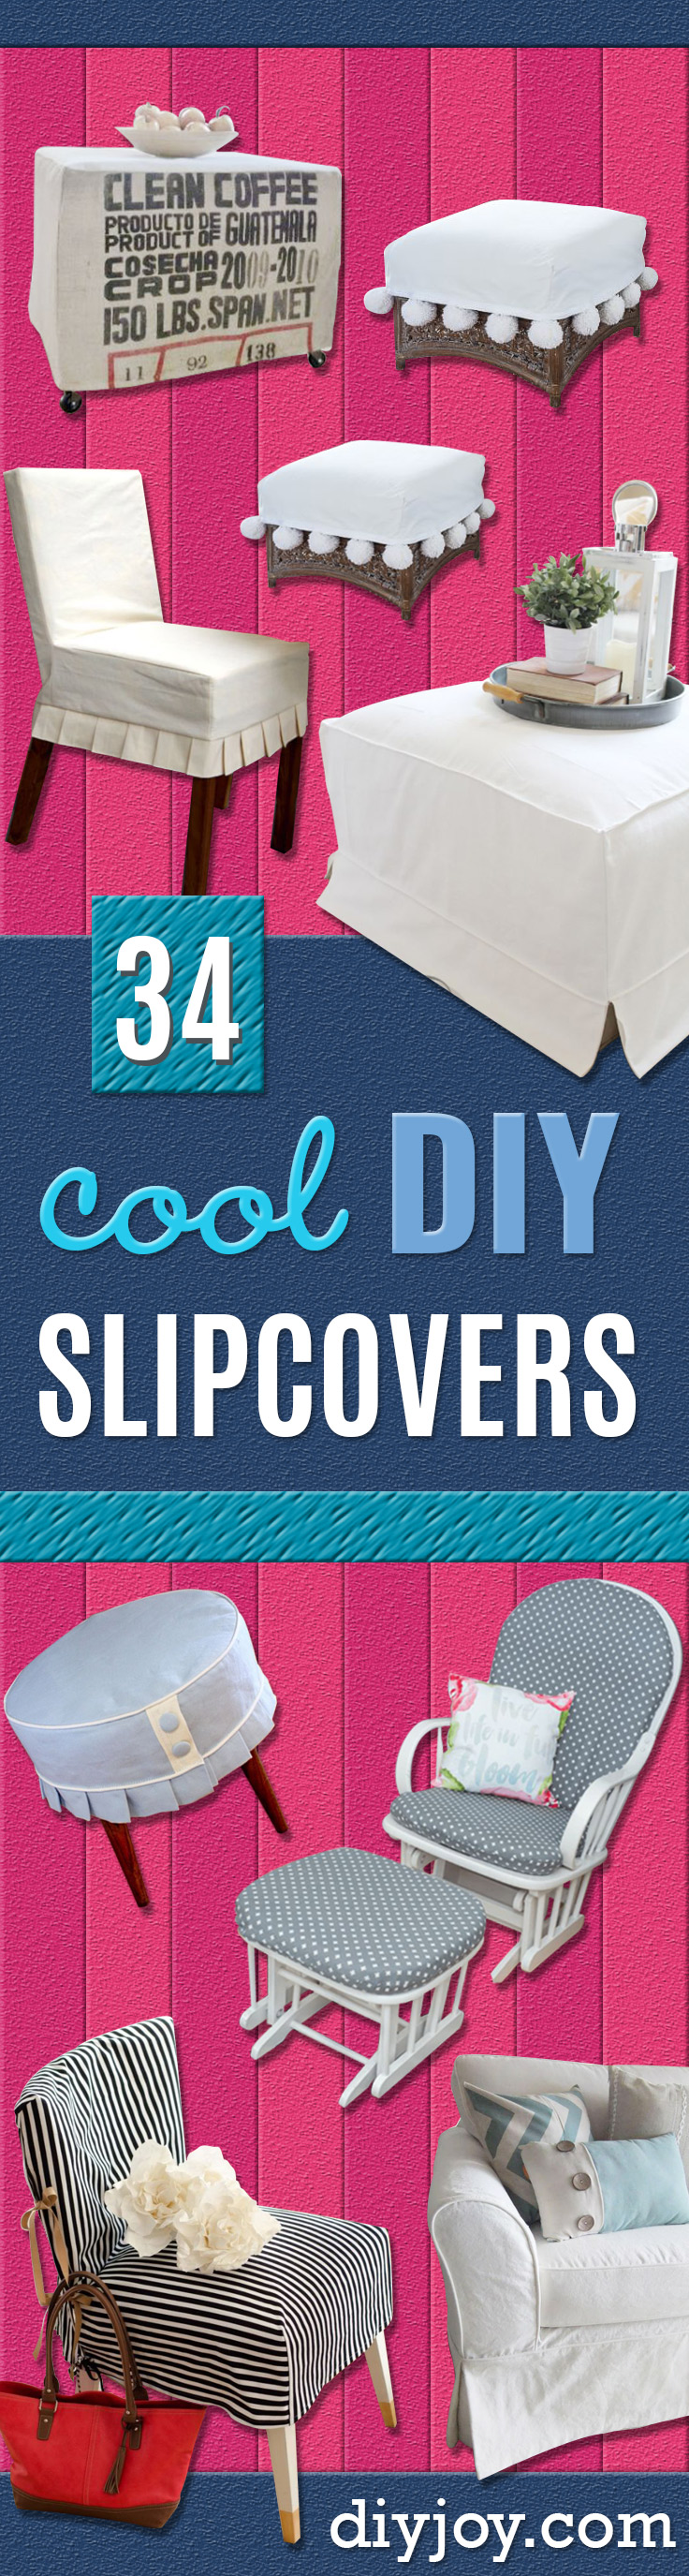 34 Diy Slipcovers For Chairs Couches And More